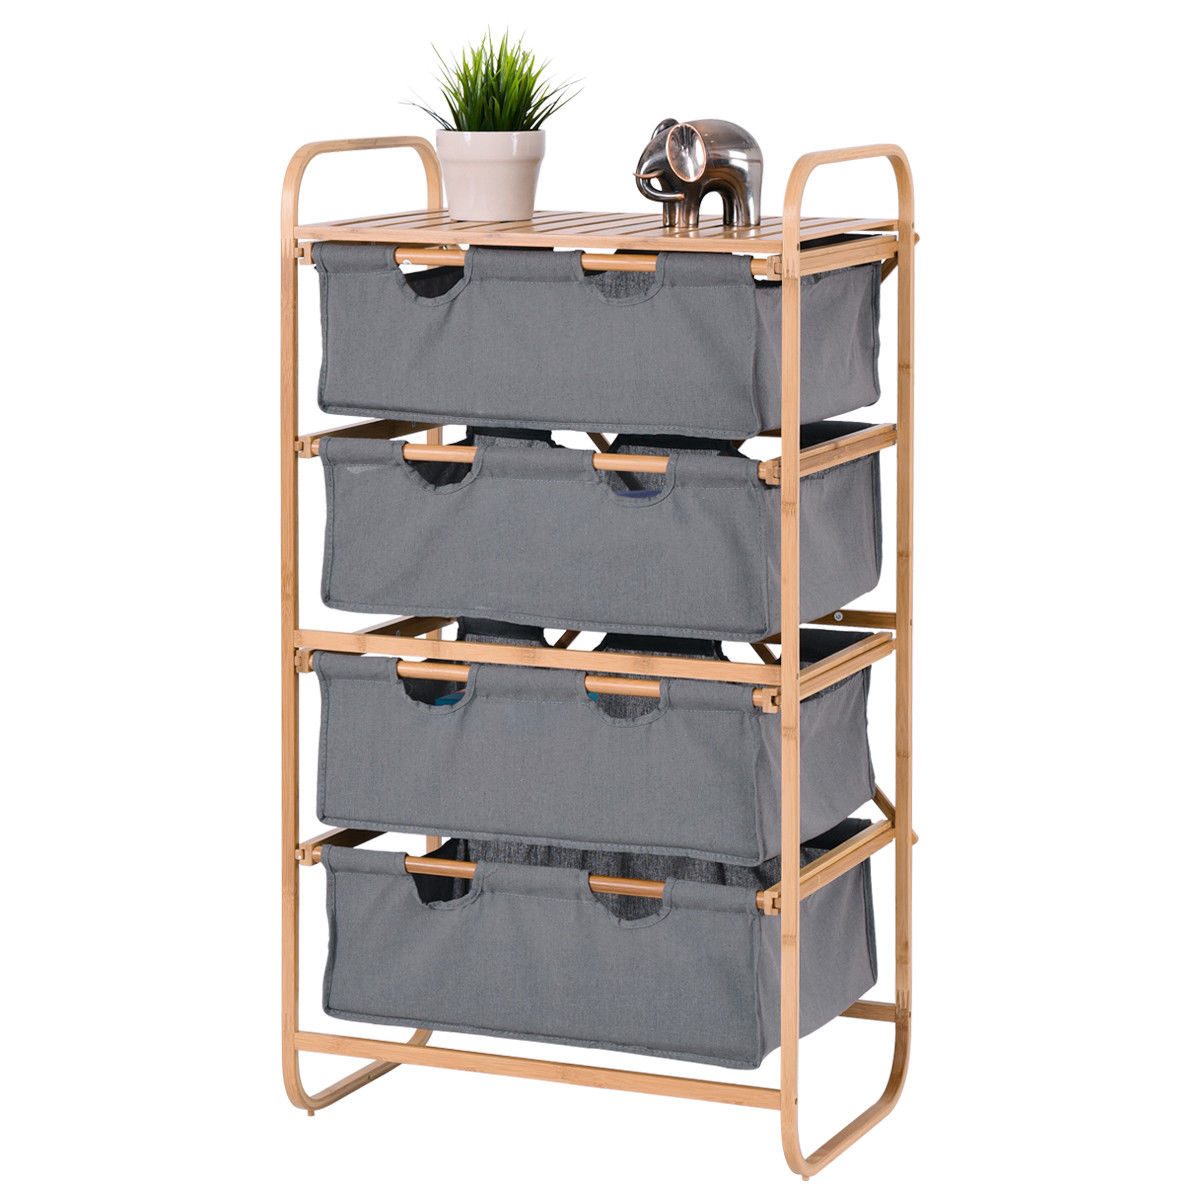 Costway 4 Large Sliding Drawer Bamboo Dresser Bins Storage Unit Organizer Laundry Hamper